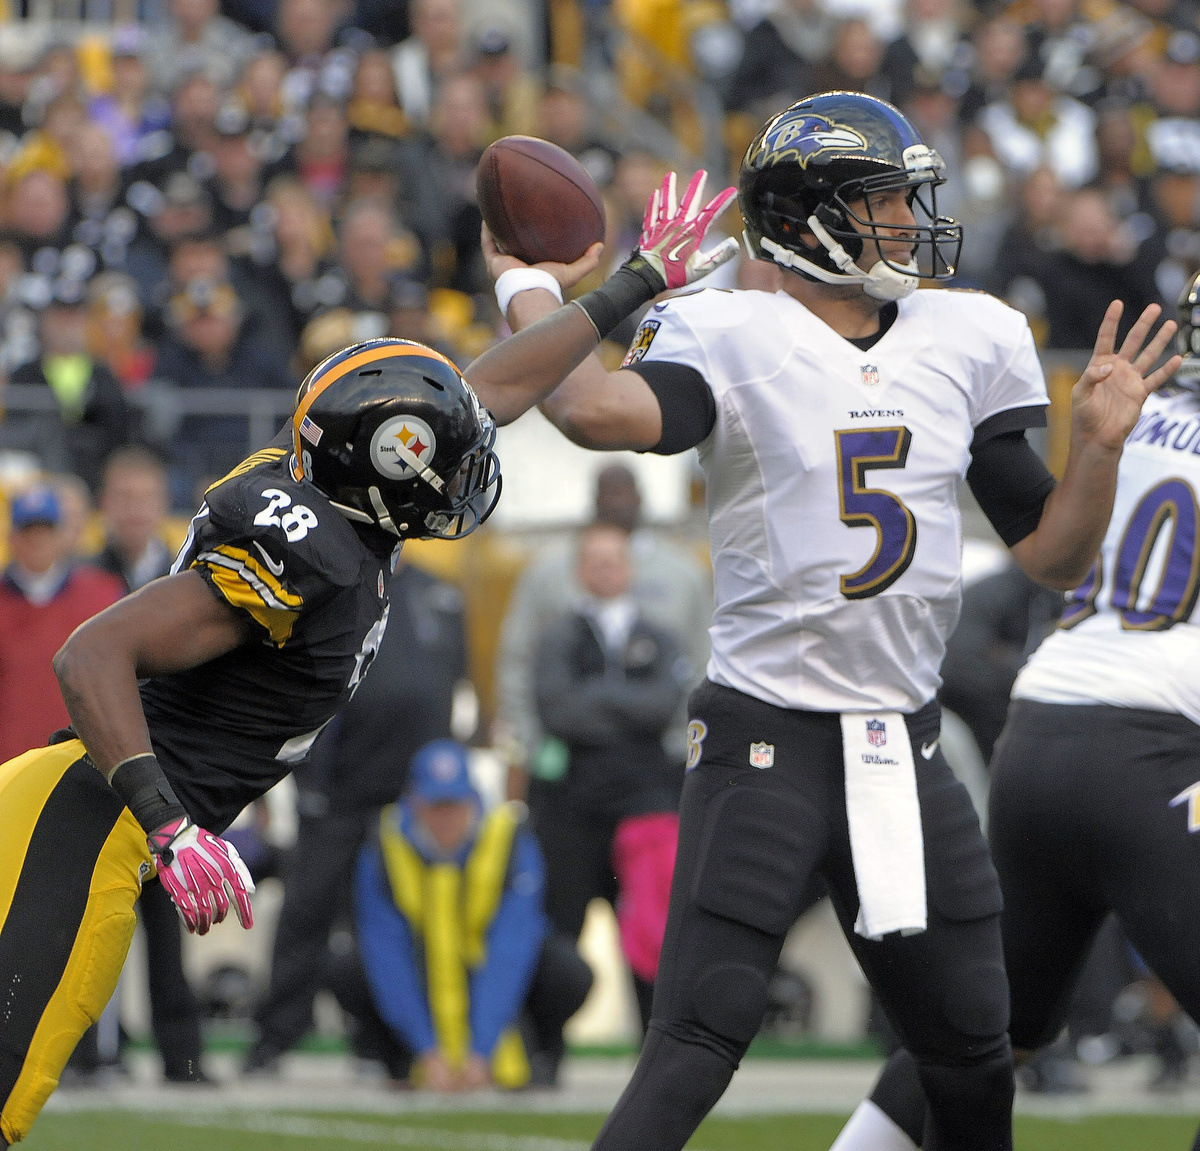 Rough Cut: A raw edit from the Ravens' loss to the Pittsburgh Steelers